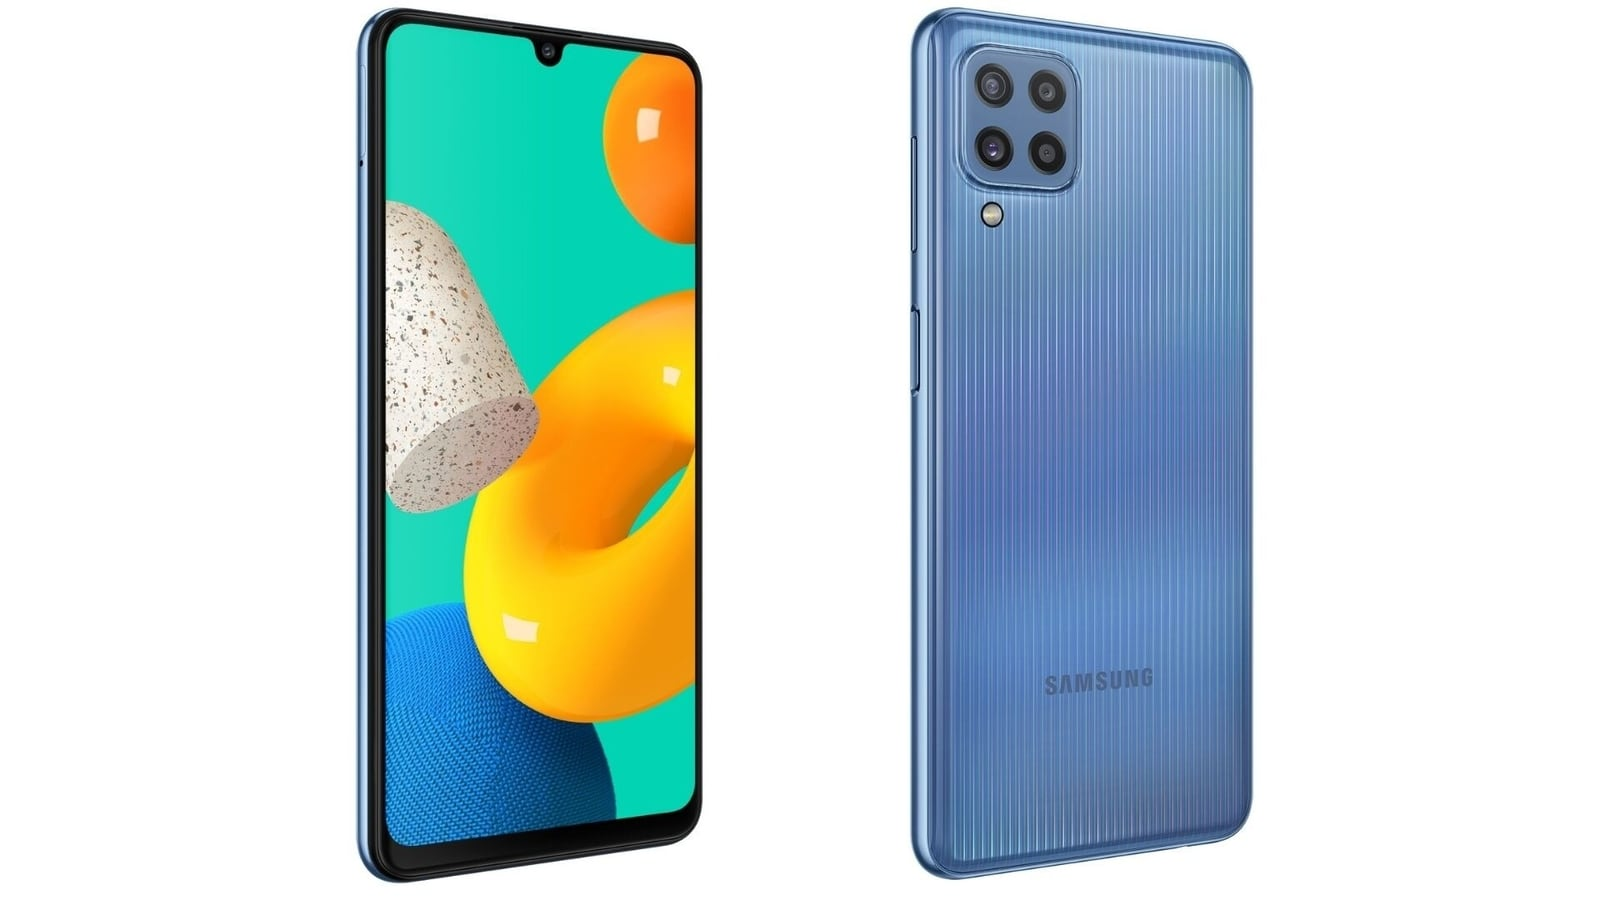 Images of Samsung Galaxy M32, before the specifications are marketed